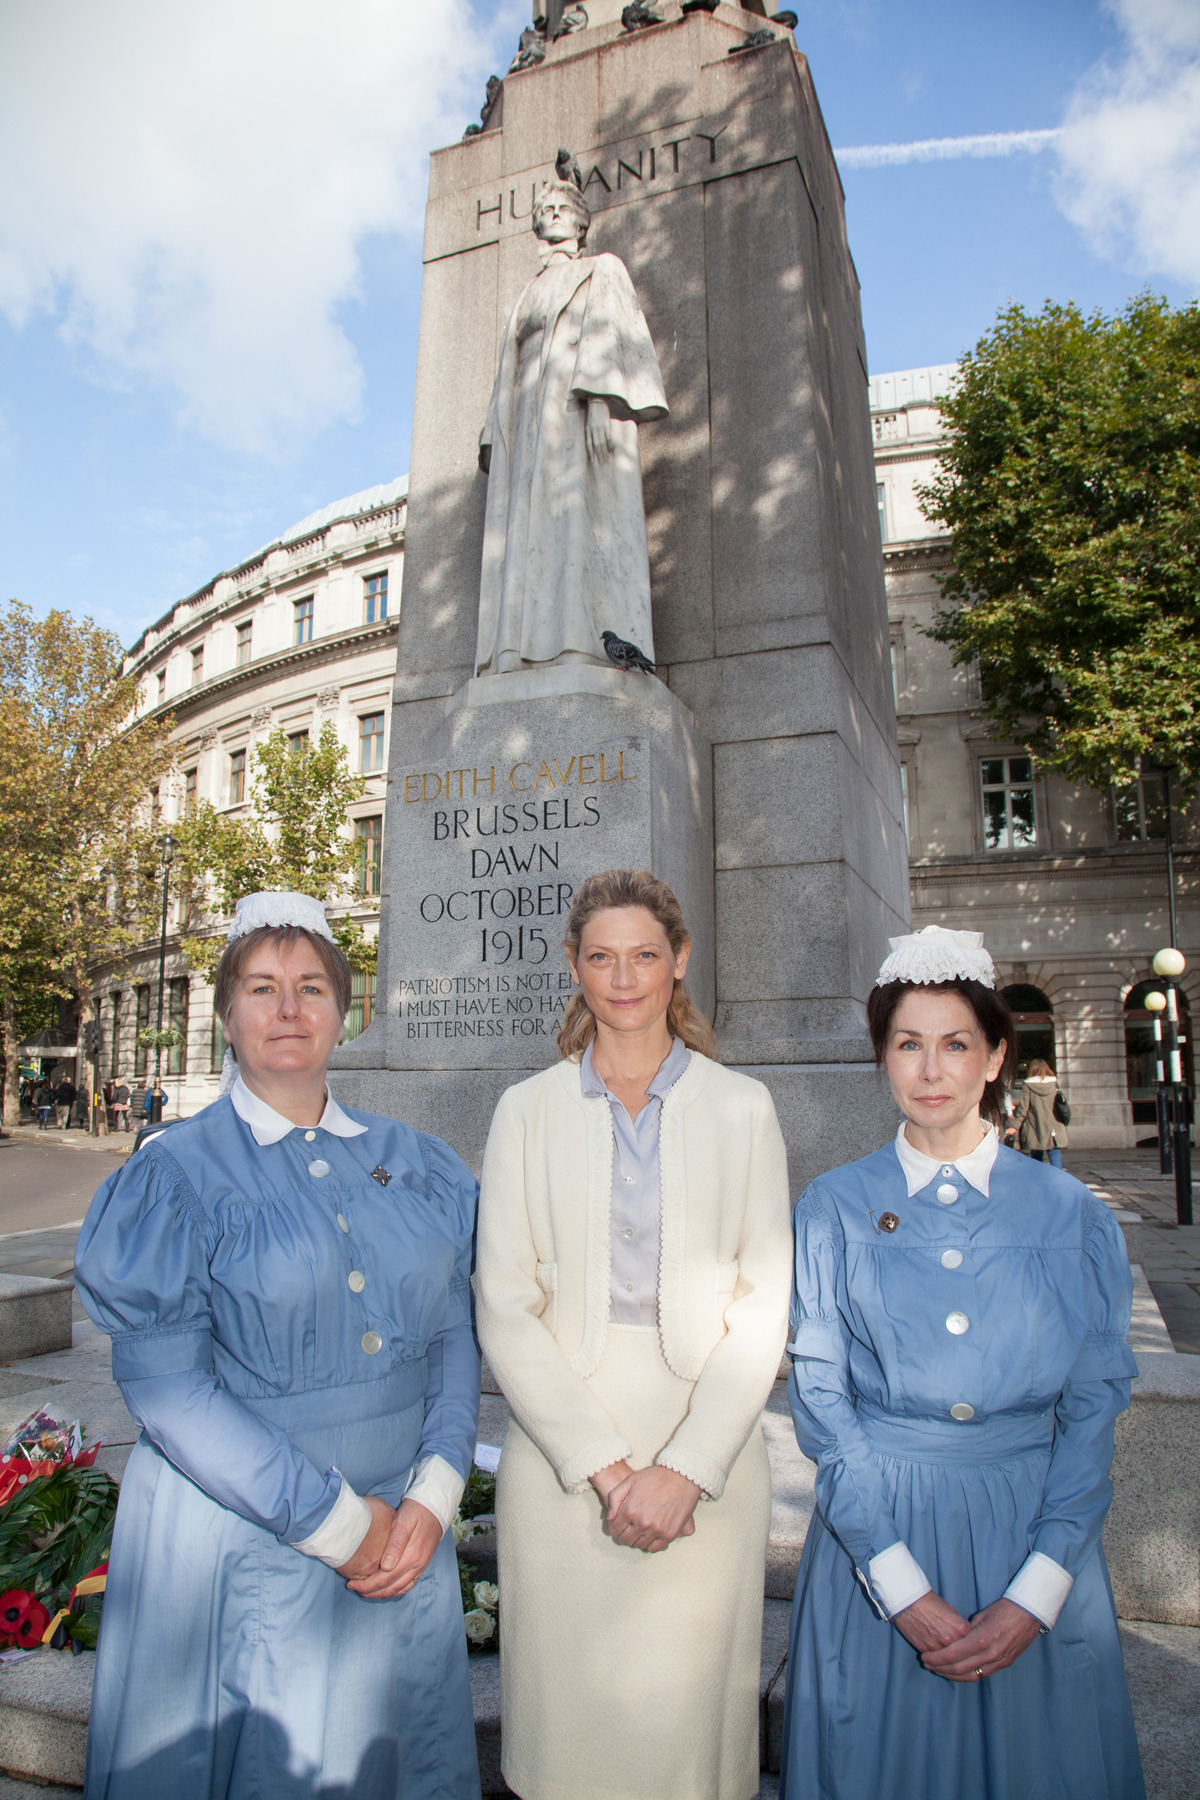 Actress Sophie Ward at the wreath-laying ceremony in London with nurses Gayle McDonnell and Shirley Turrell from the Royal London Hospital in traditional uniform